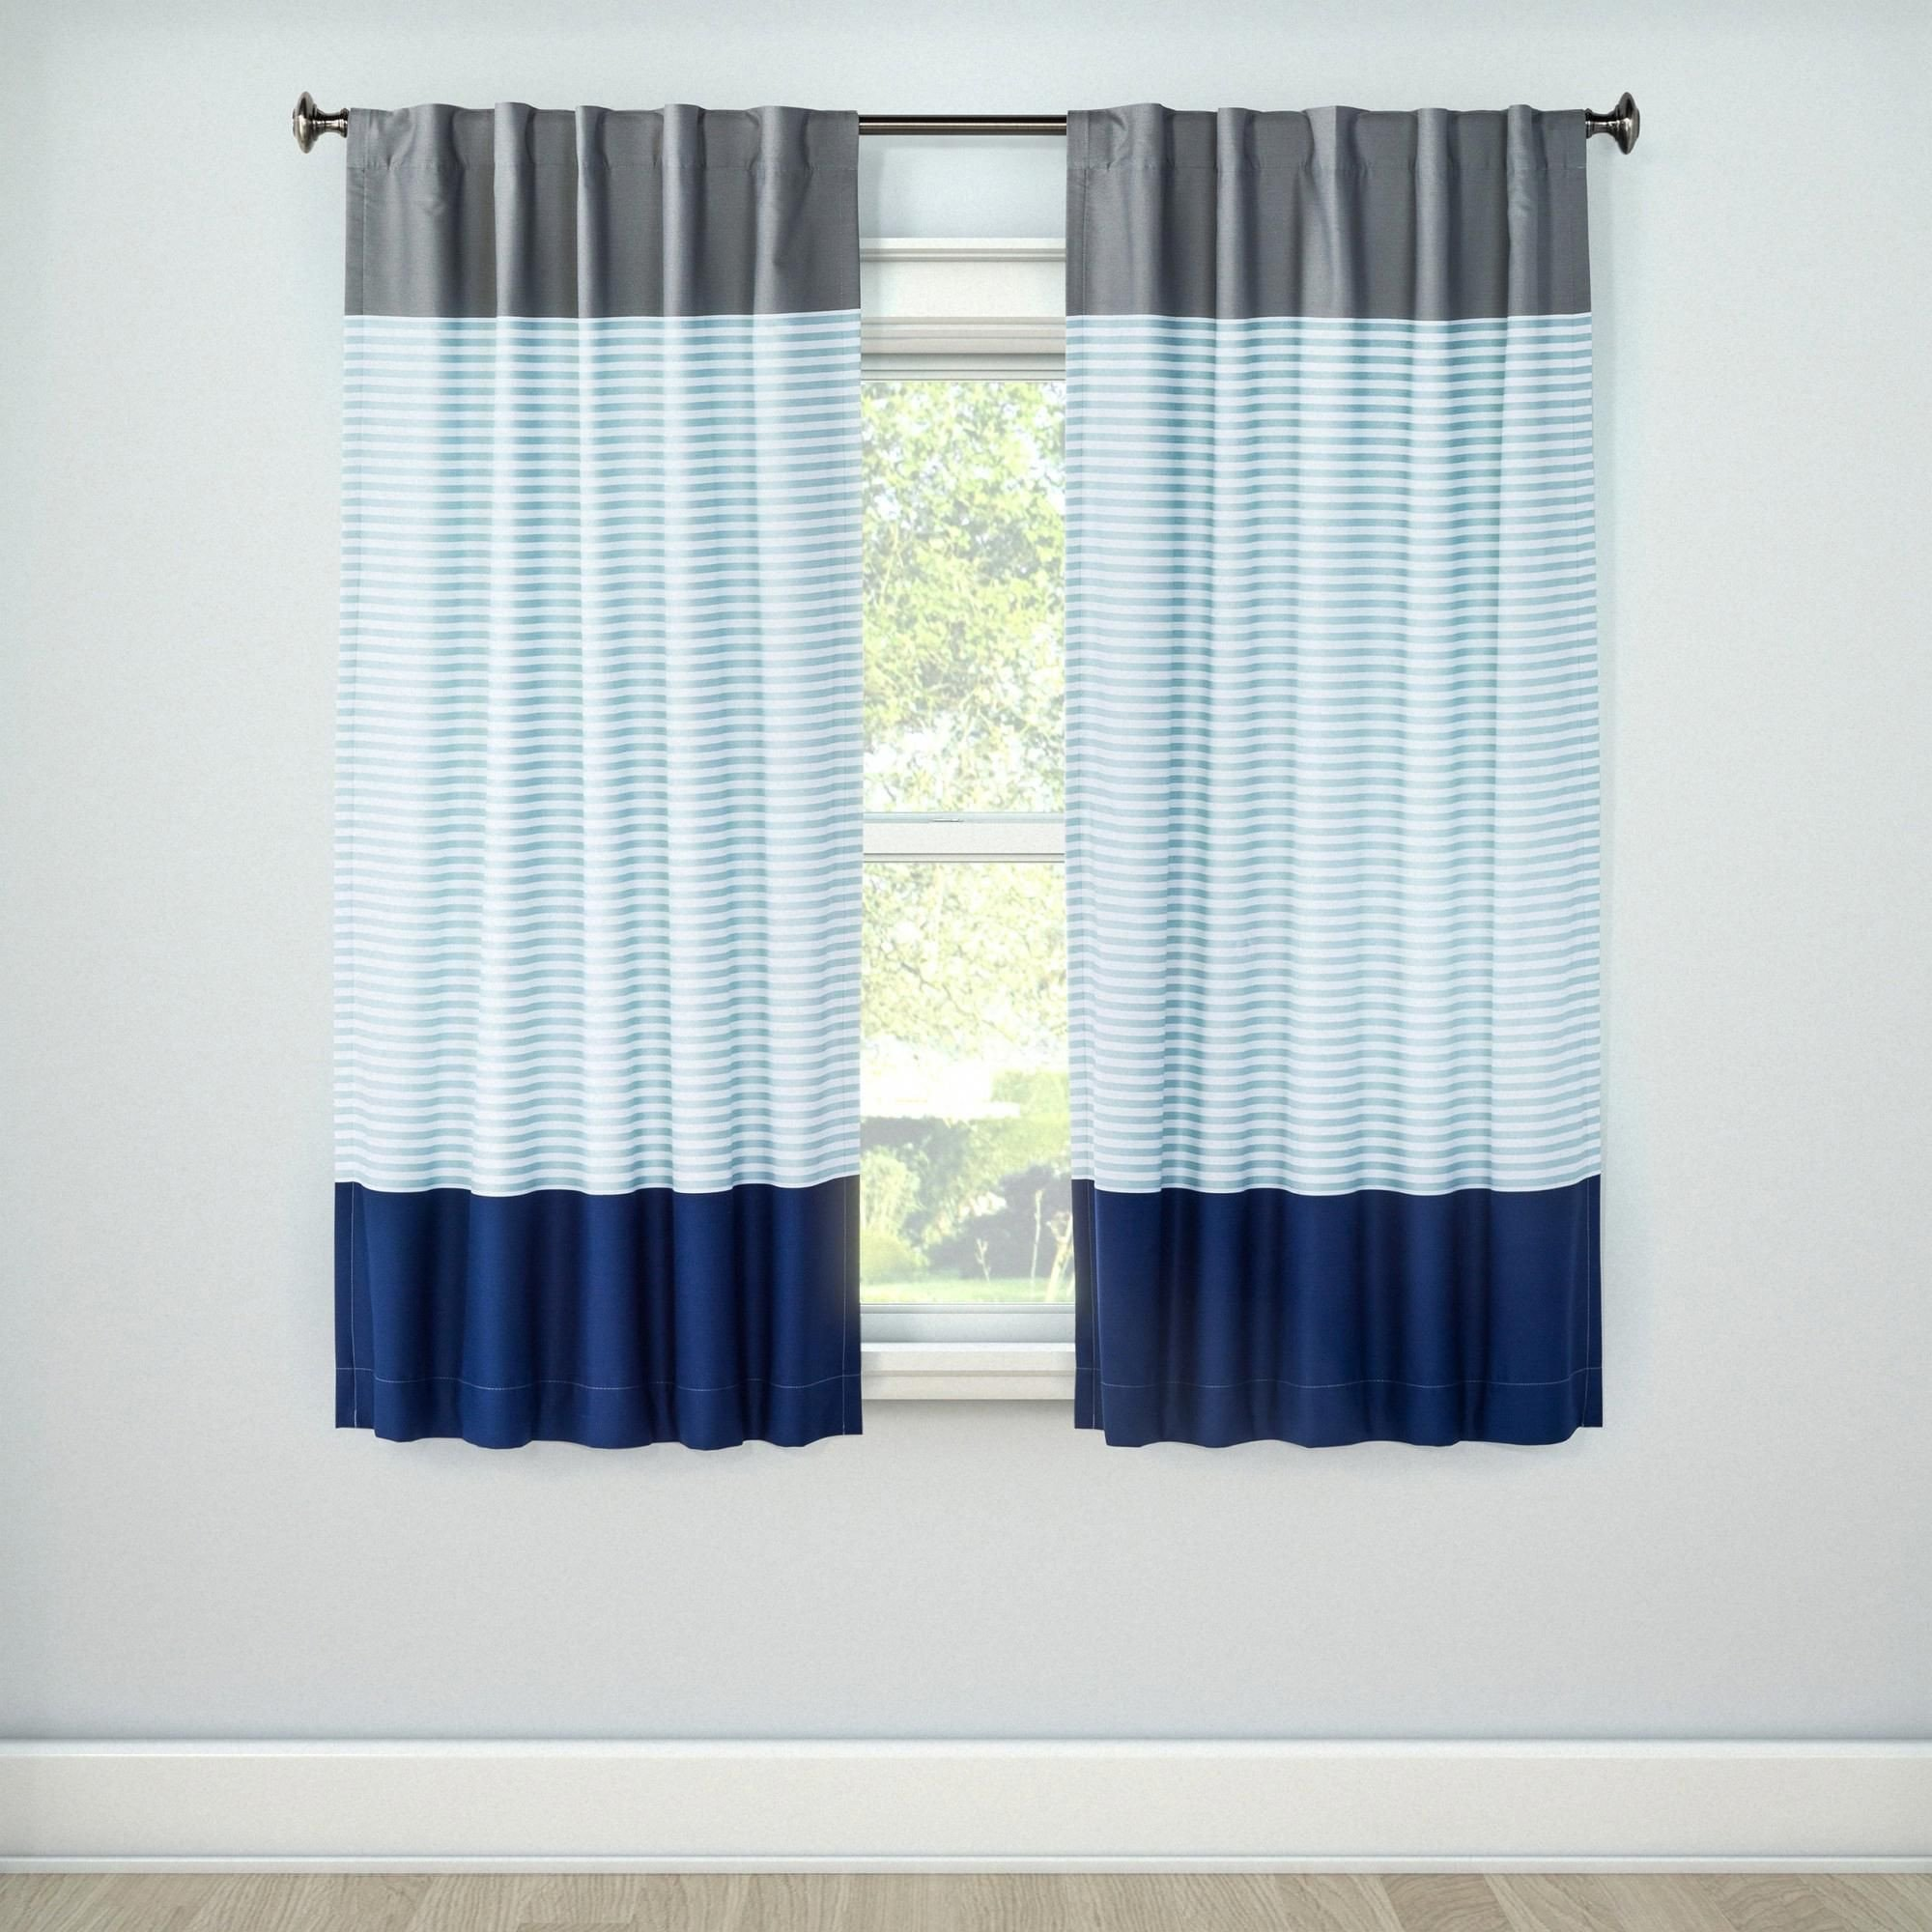 "Bedroom Curtains at Walmart Elegant Colorblock Light Blocking Window Curtain 84""x42"" Blue"